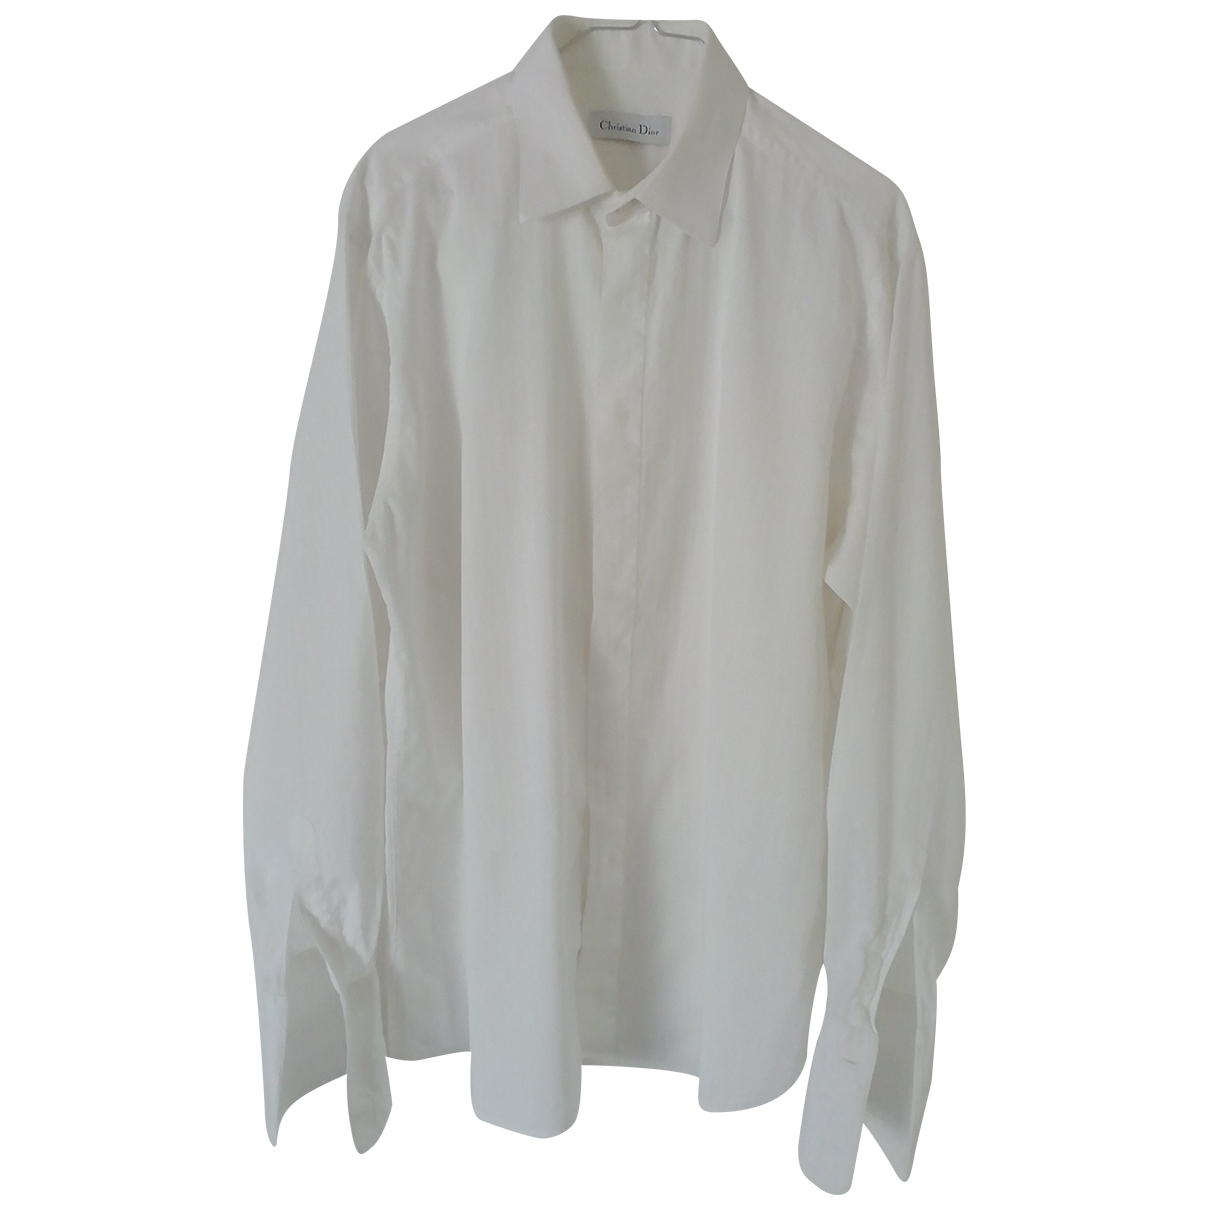 Christian Dior \N White Cotton Shirts for Men 15.5 UK - US (tour de cou / collar)